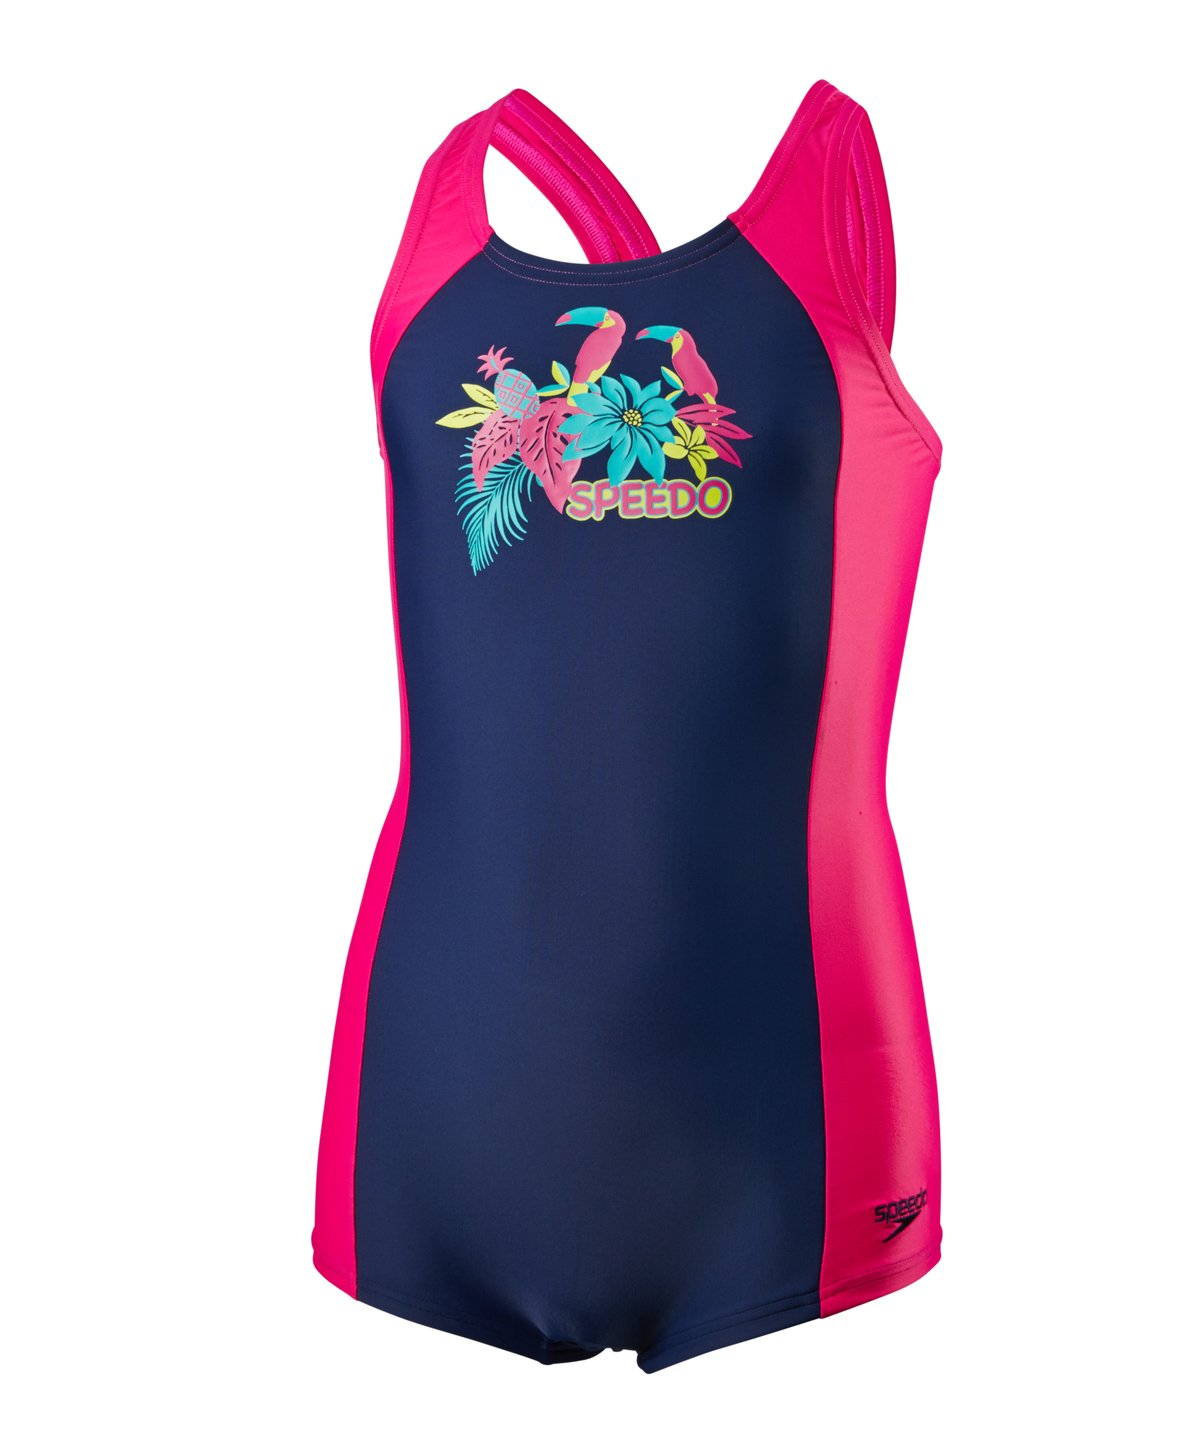 Speedo, Costume da bagno intero per bambine, ragazza, Samba Feathers Panel, Navy/Electric Pink/Jade, 26 8-05513B511